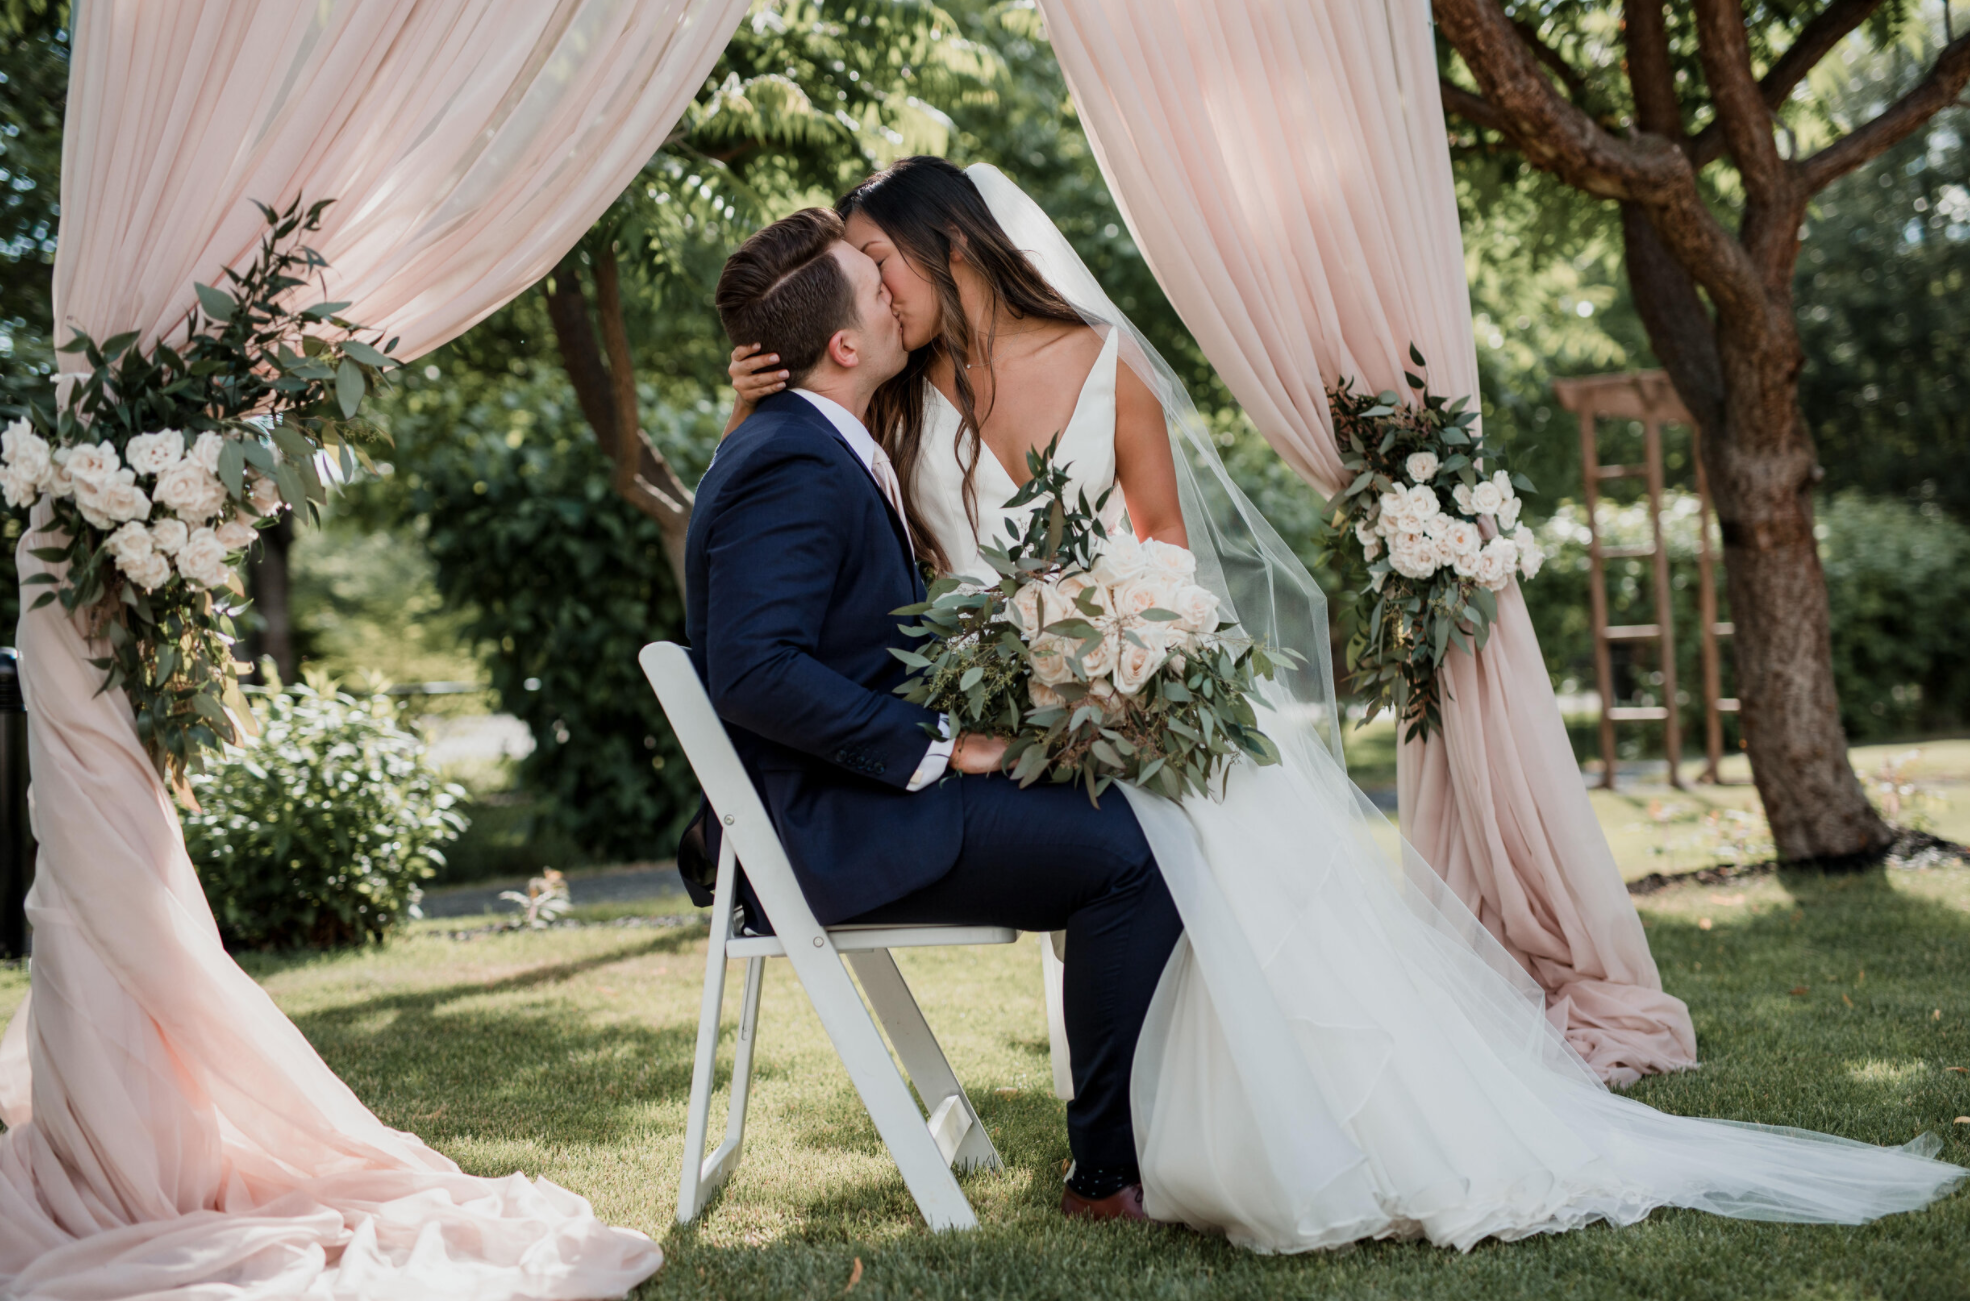 Newlyweds kiss after ceremony in Okanagan Valley